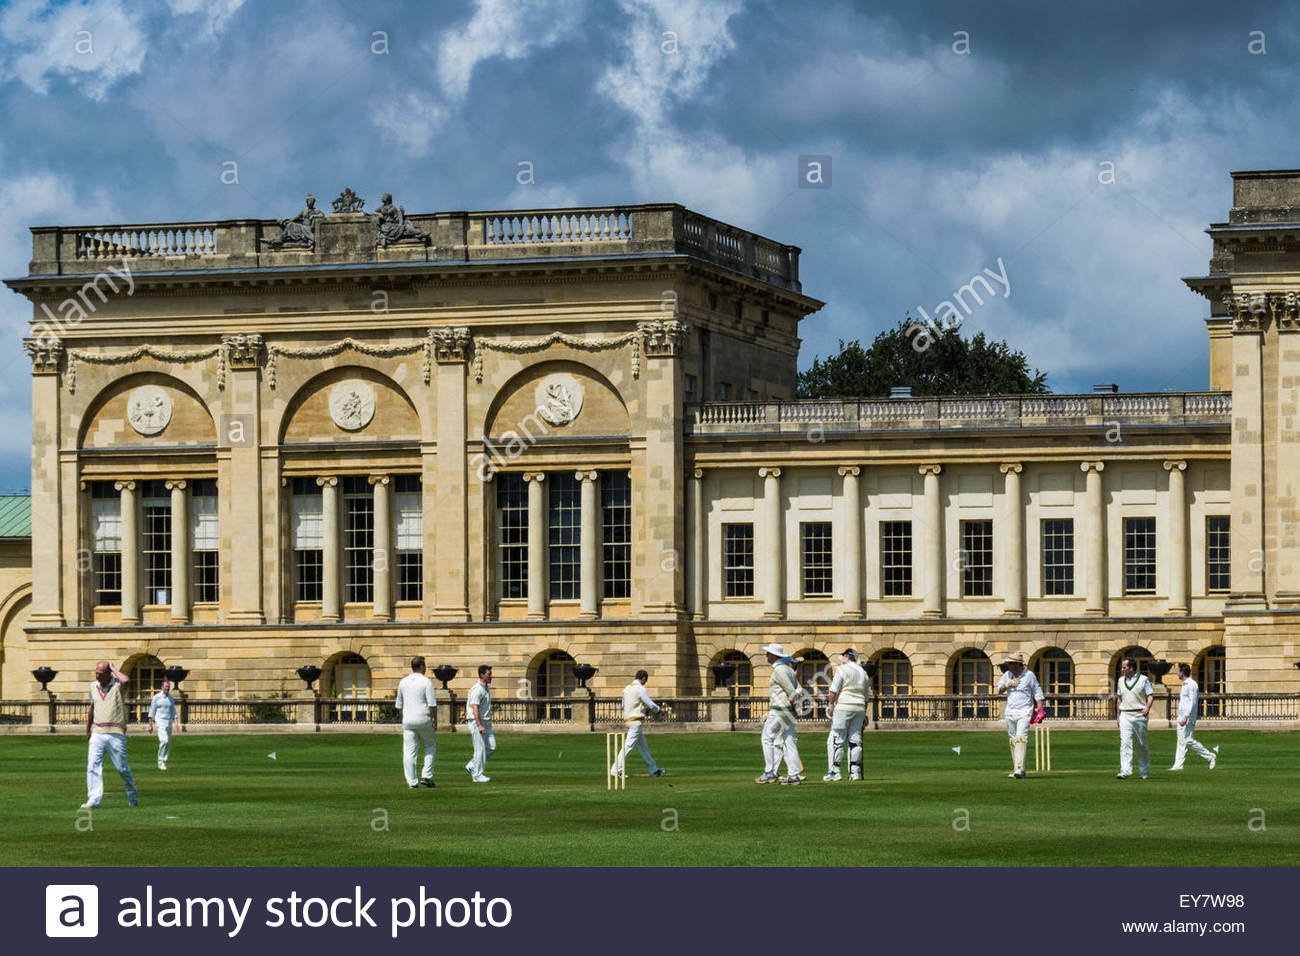 Cricketers in a cricket match with the stately home of Stowe House in the background - Stock Image